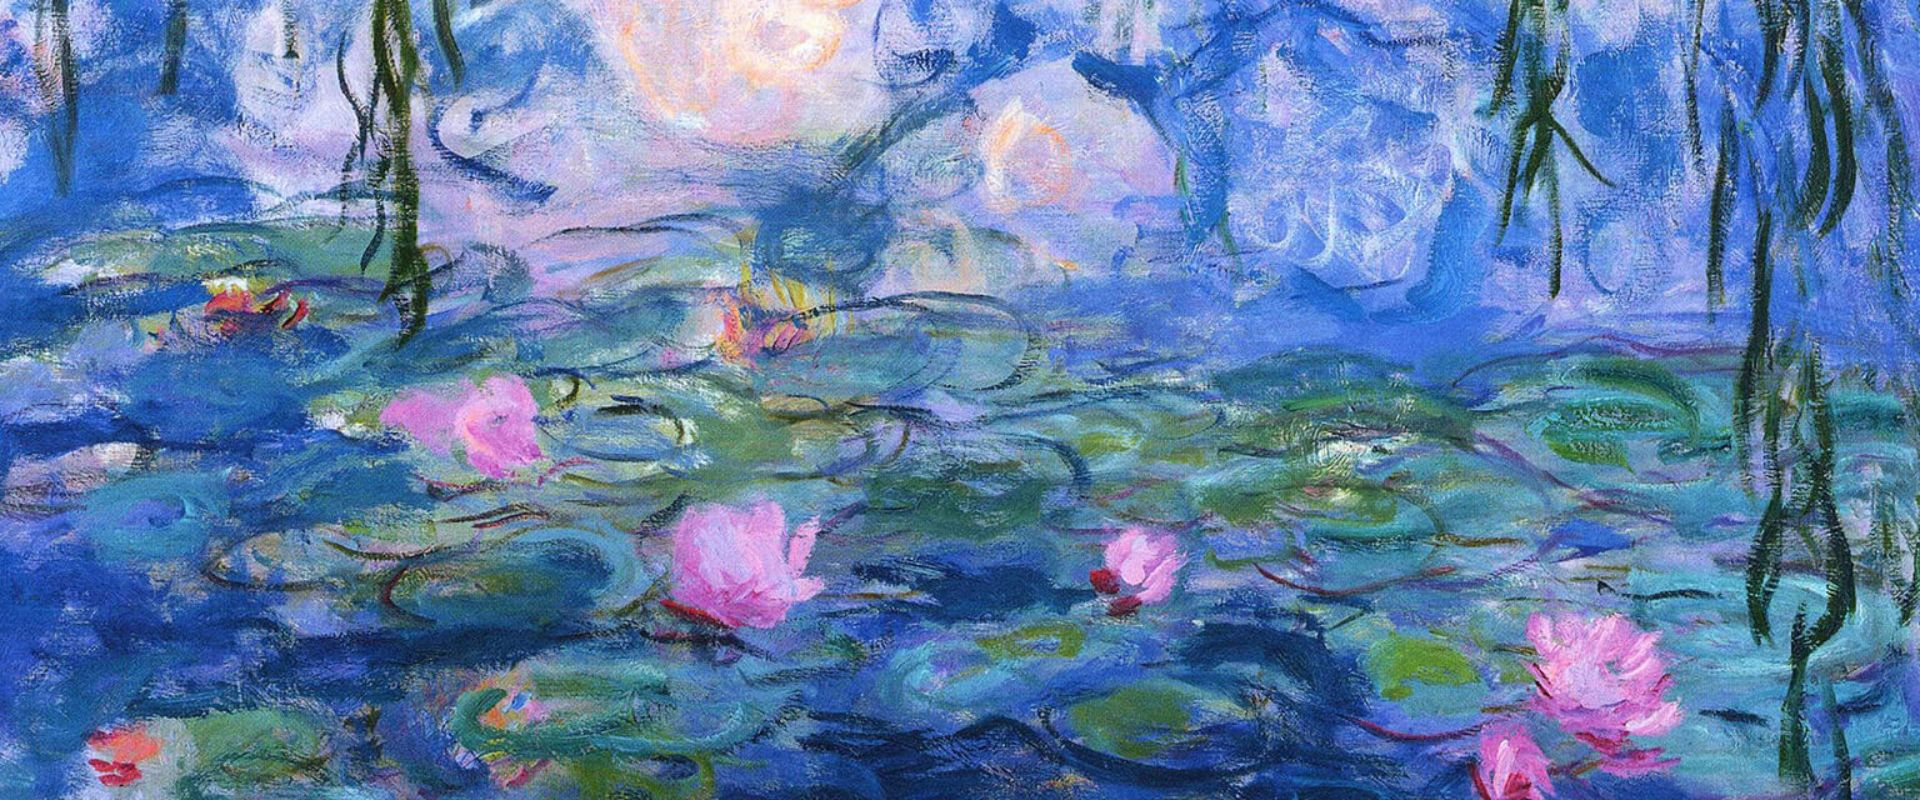 Claude monet paintings artworks collection buy posters for Buy art posters online